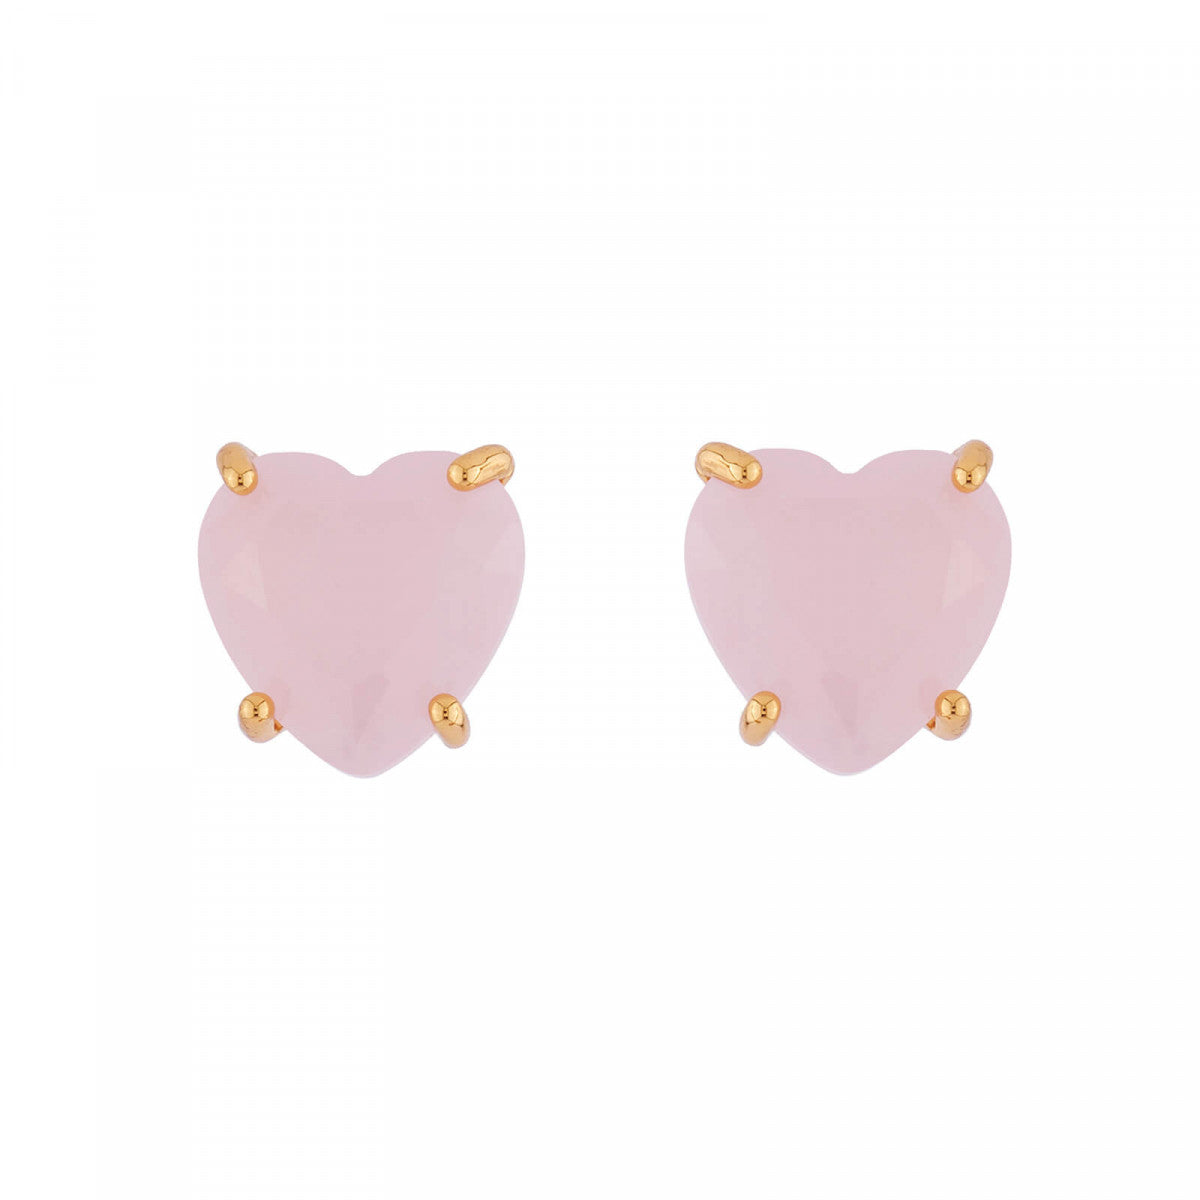 La Diamantine Earrings with Little Heart-Shaped Stone